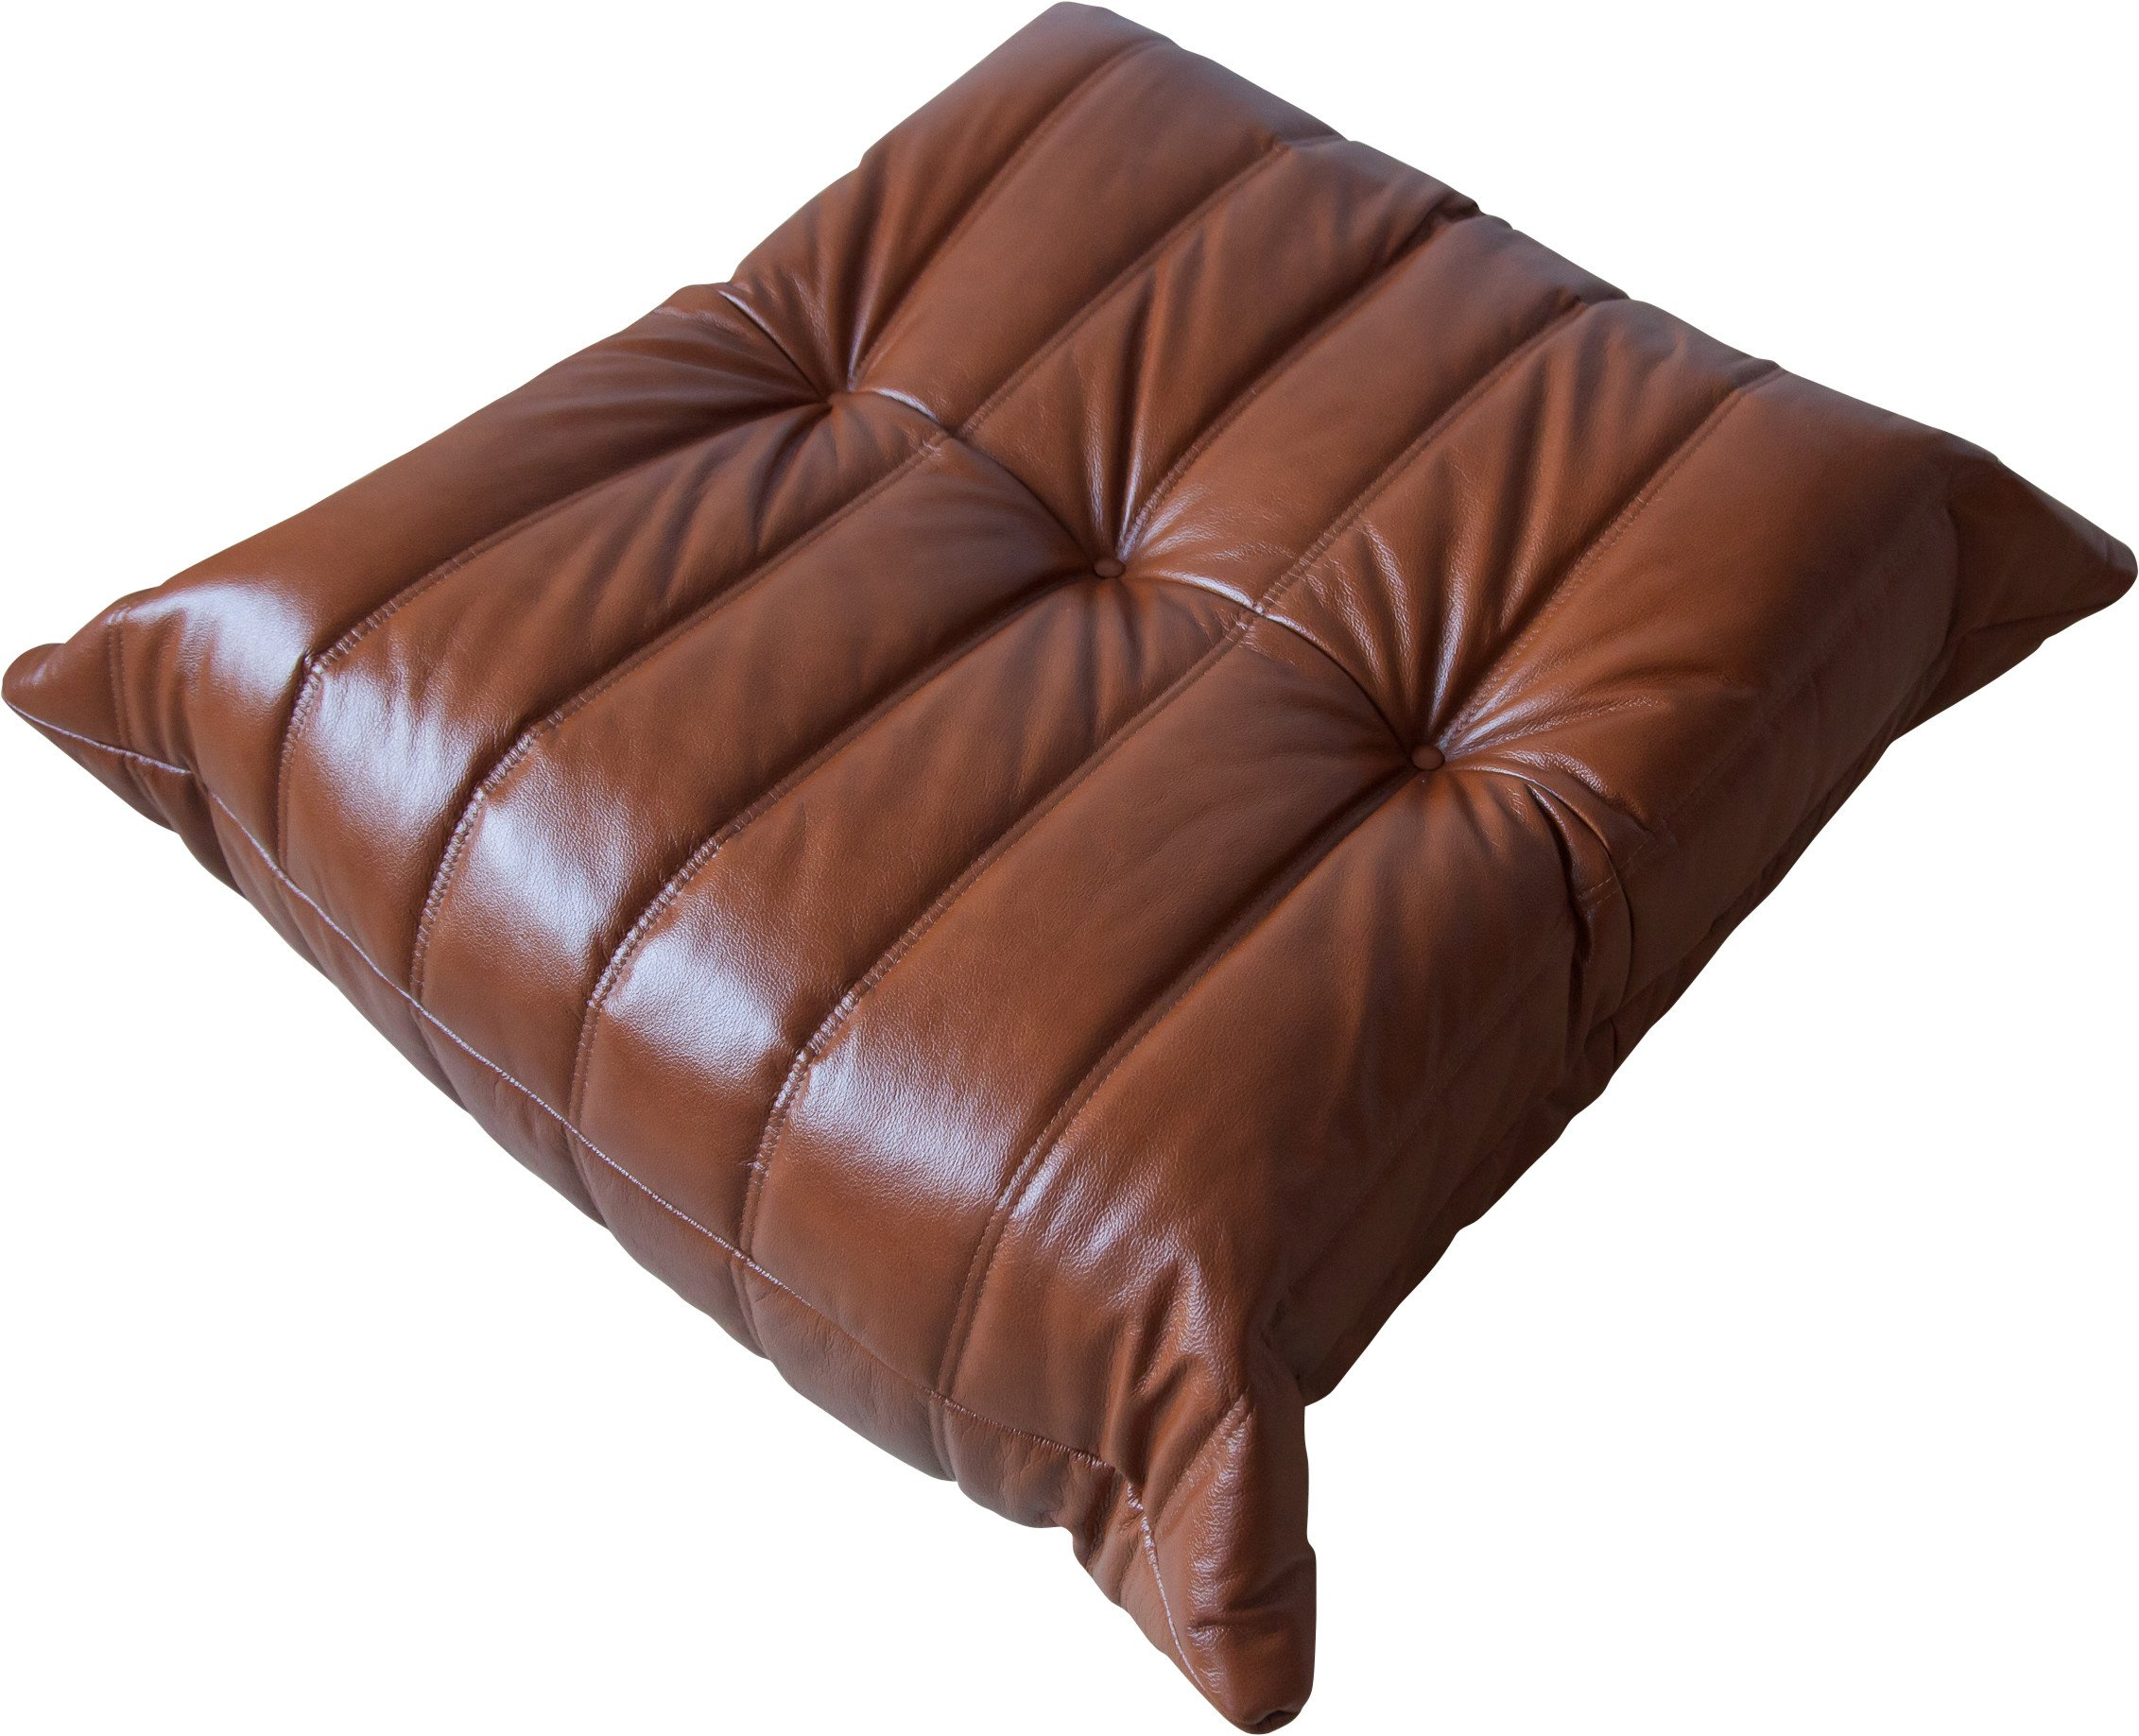 Togo Pouf in Whiskey Brown Leather by M. Ducaroy, Ligne Roset, 1970s